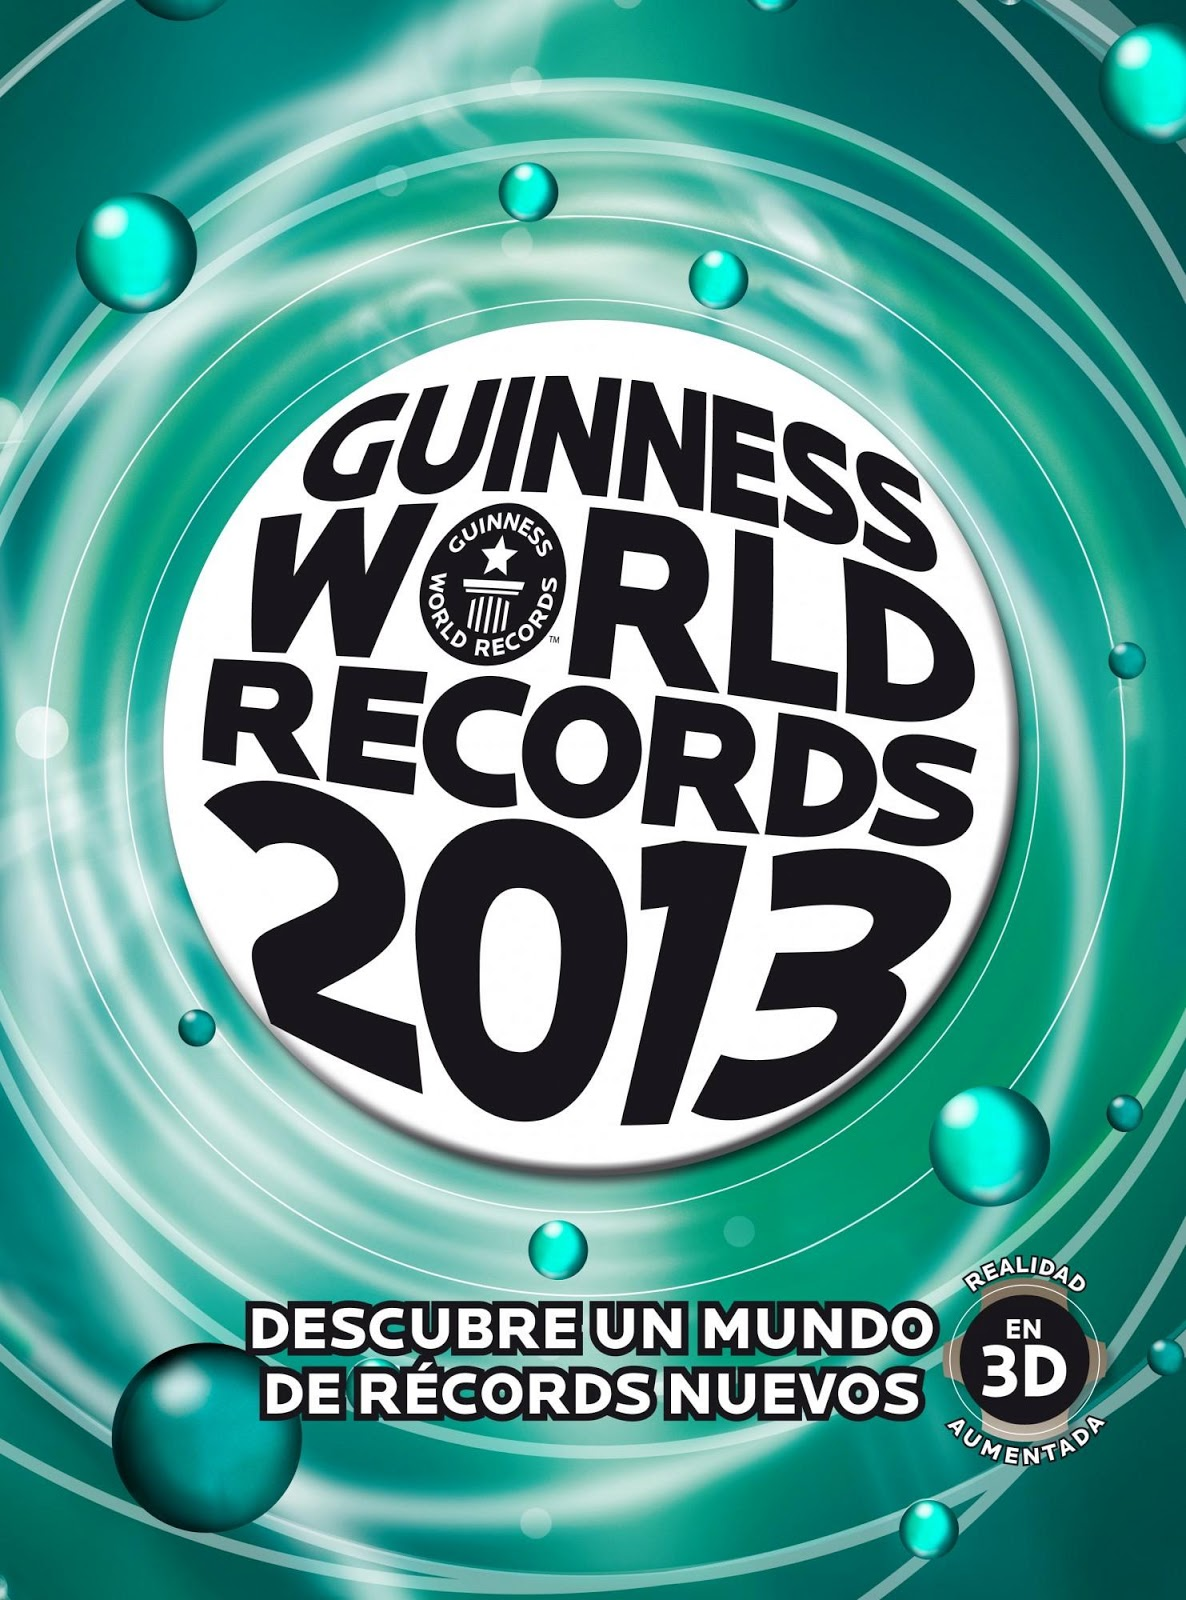 Libro Record Guinness 2017 Libros Librerías San Francisco Libro Guinness World